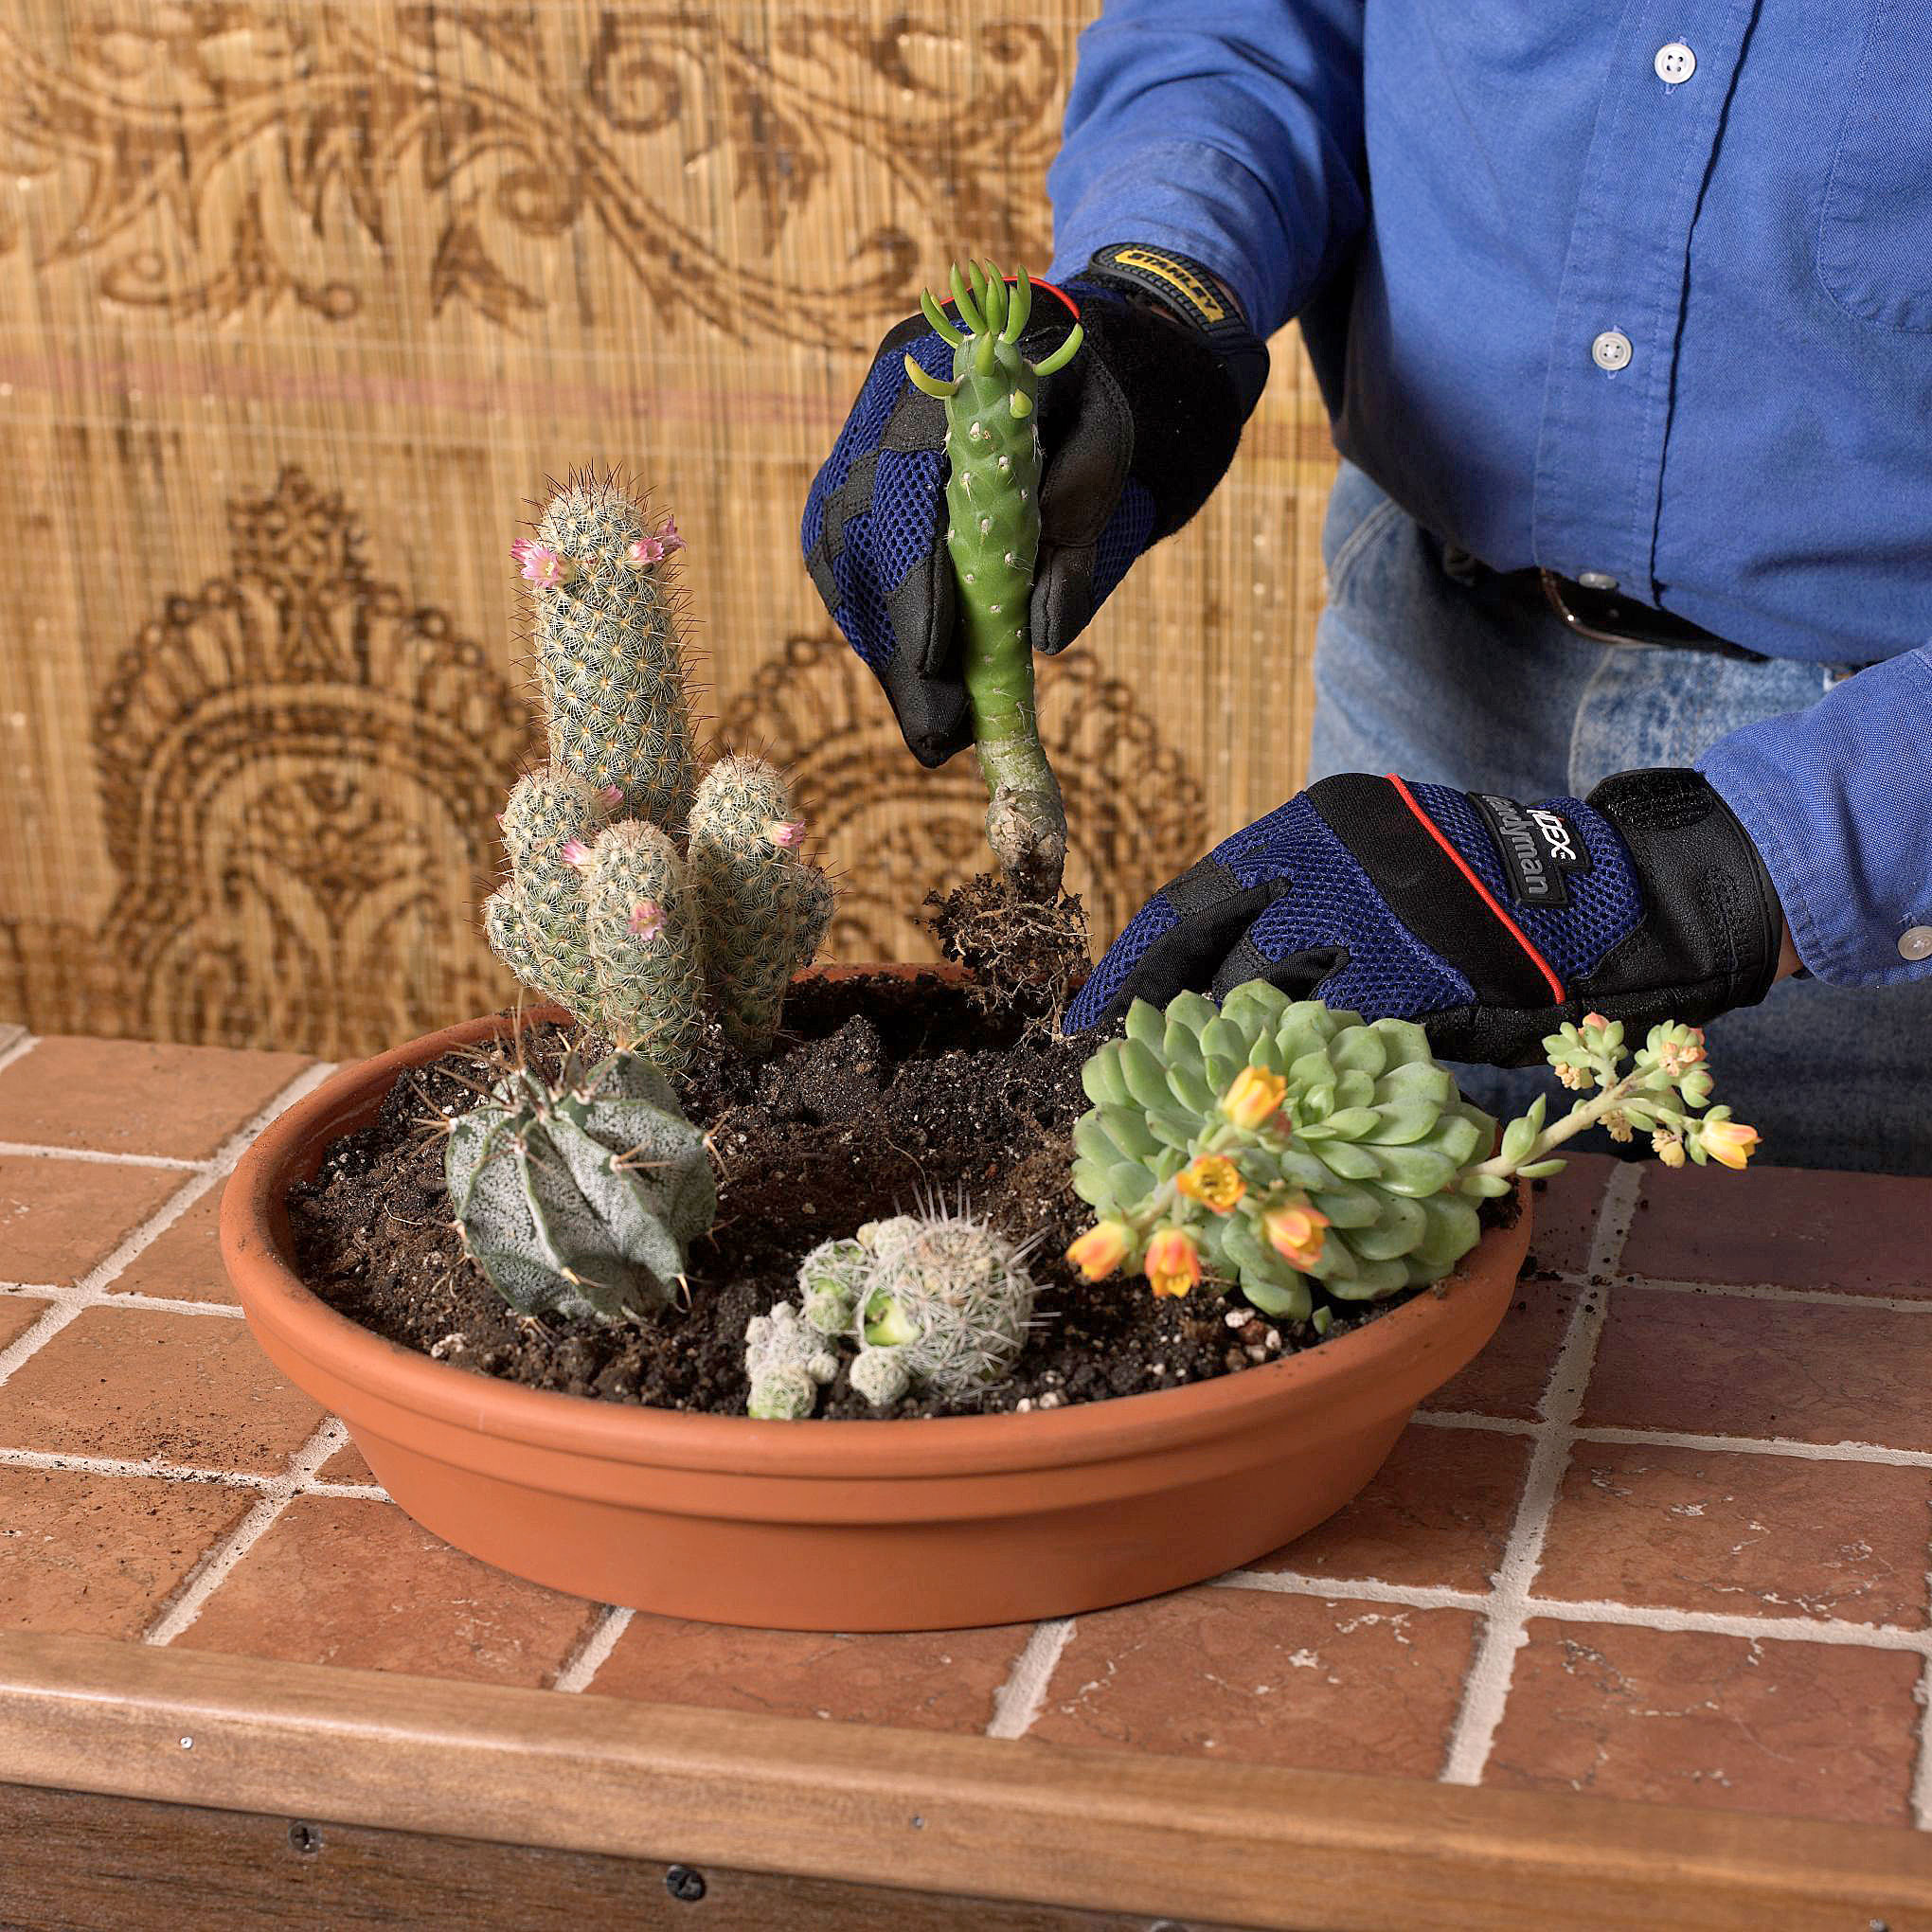 Planting the cacti